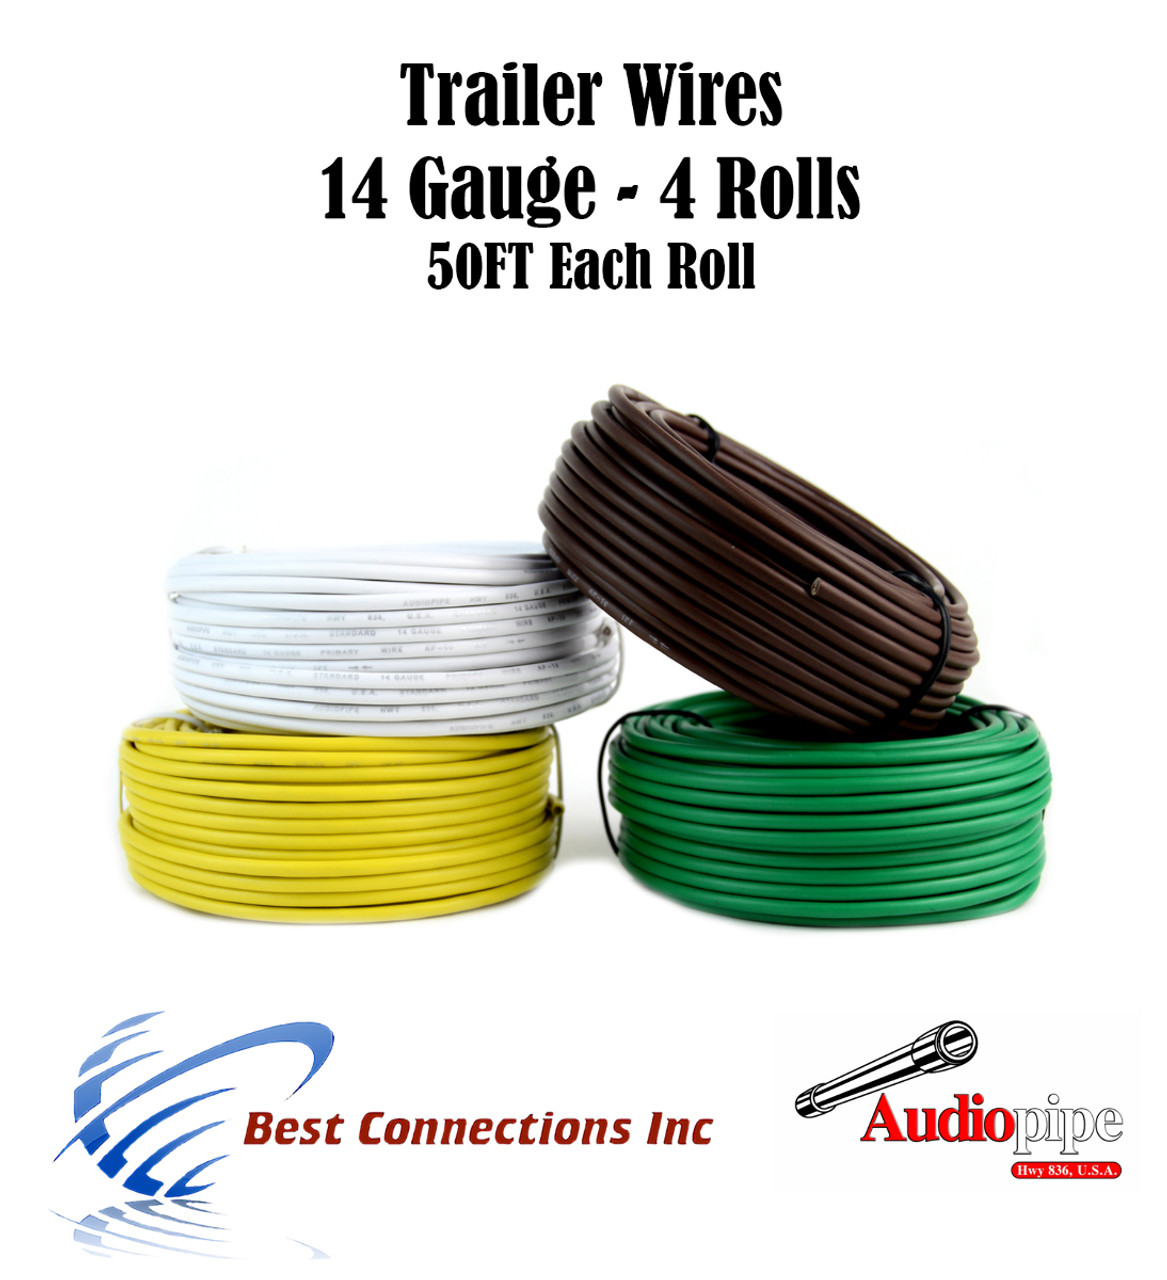 Trailer Light Cable Wiring For Harness 50ft spools 14 Gauge 4 Wire 4 ...